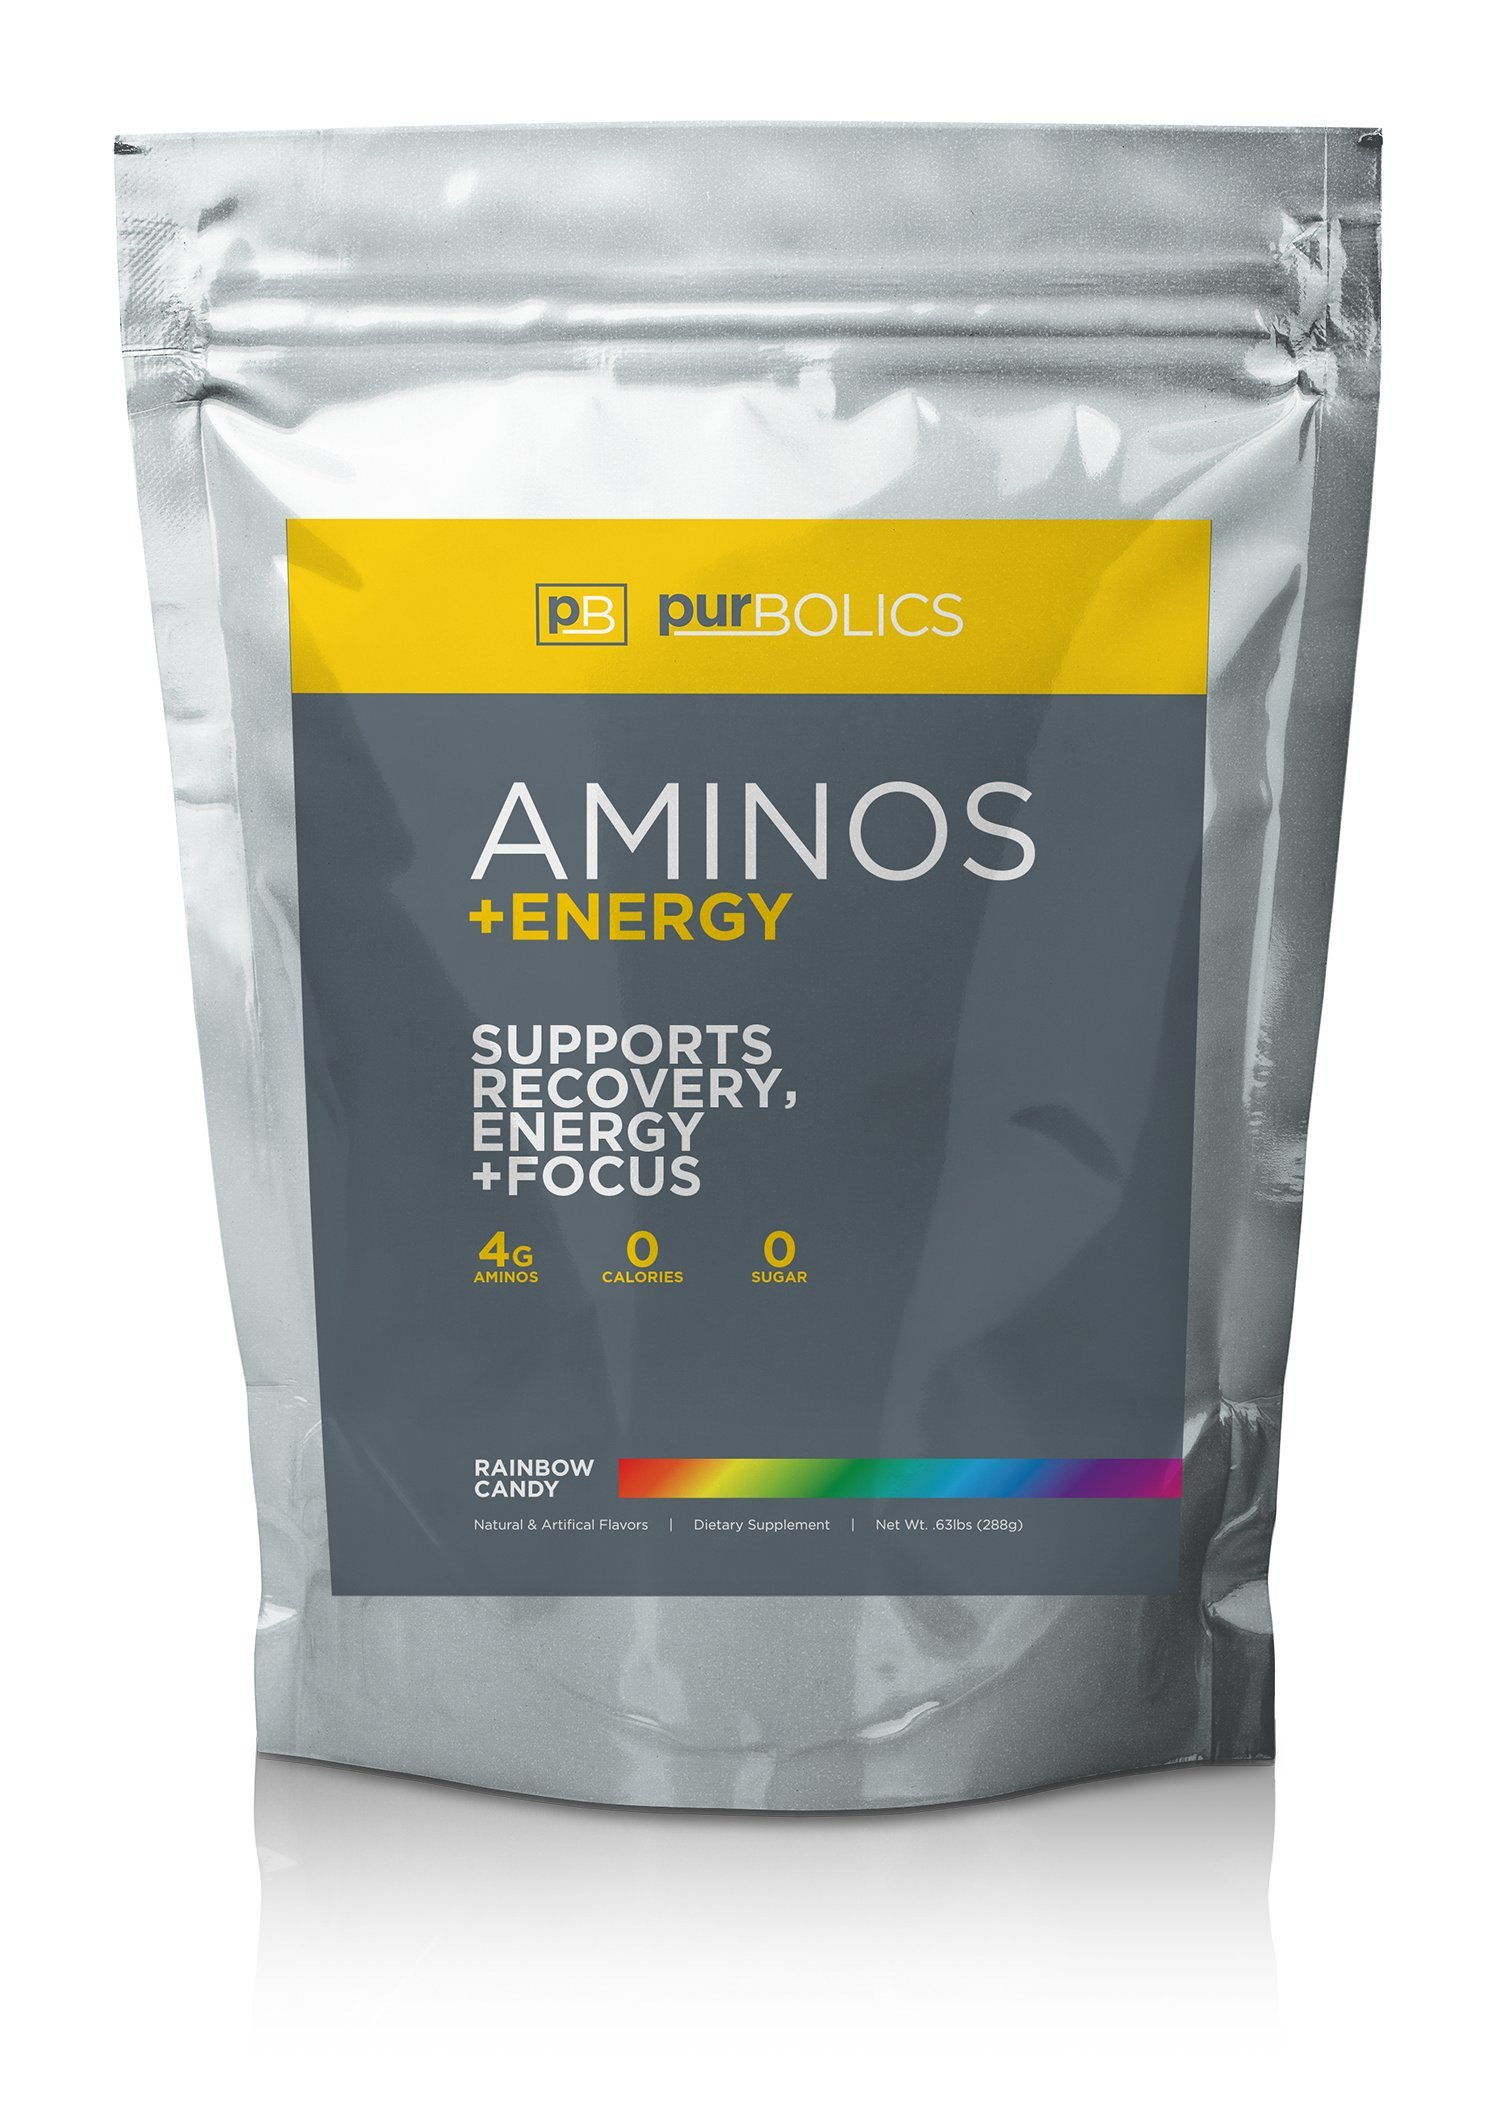 Purbolics Aminos + Energy | Supports Recovery, Energy & Focus | 95mg of Caffeine,